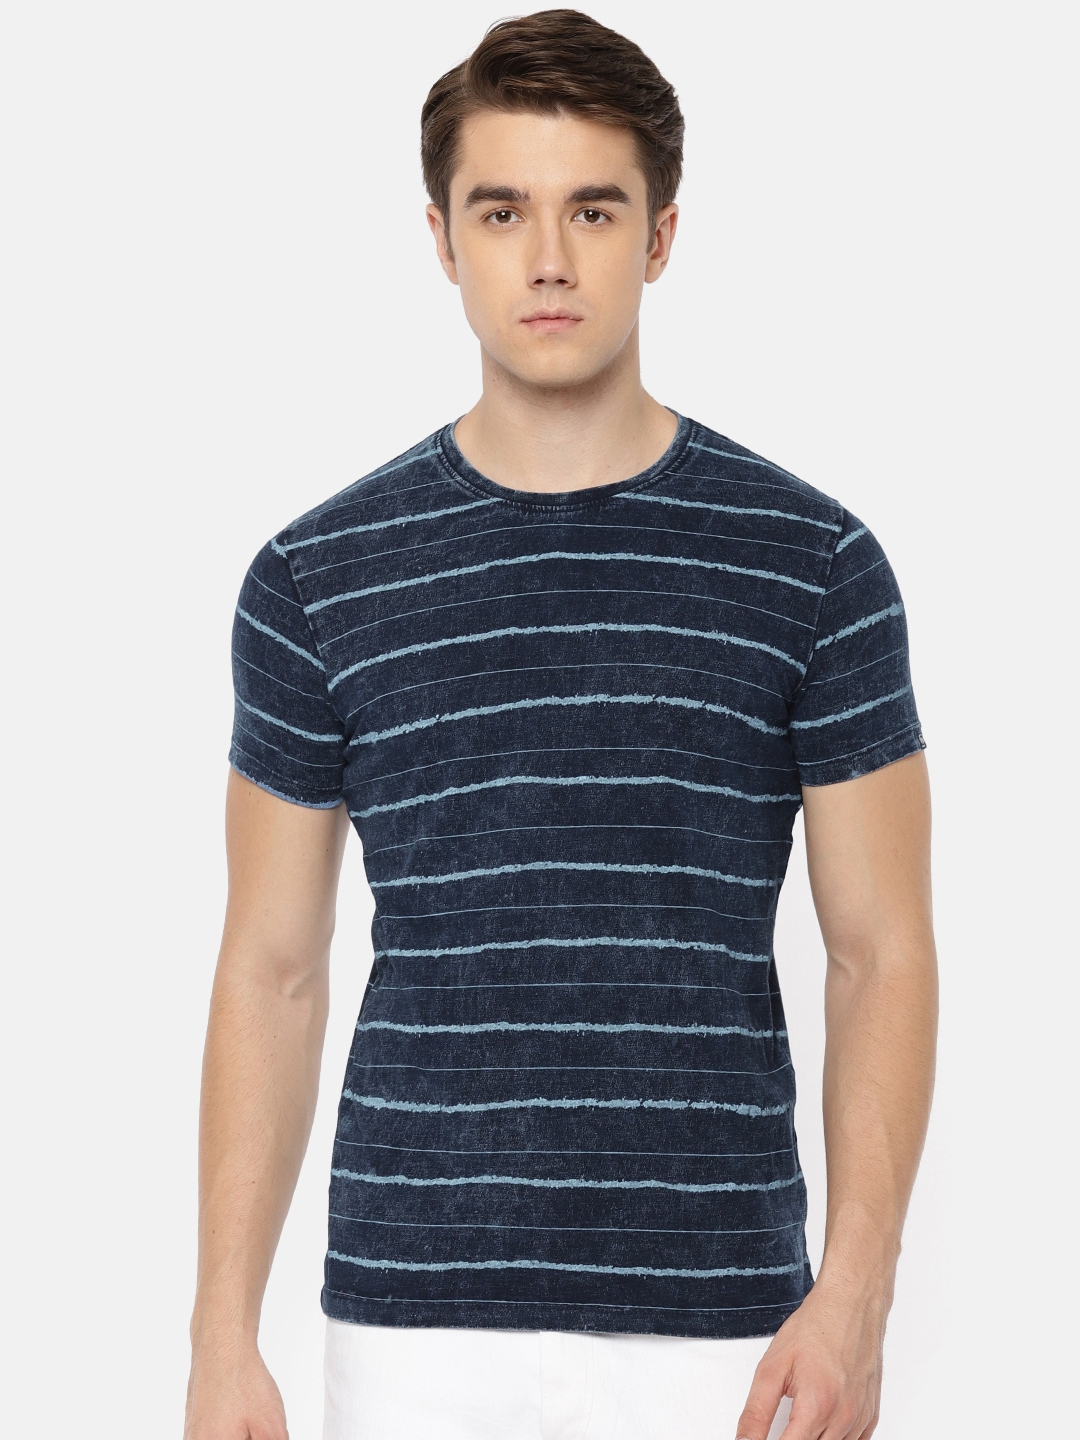 cfaca81257dc Buy Pepe Jeans Men Navy Blue Striped Slim Fit Round Neck T Shirt ...